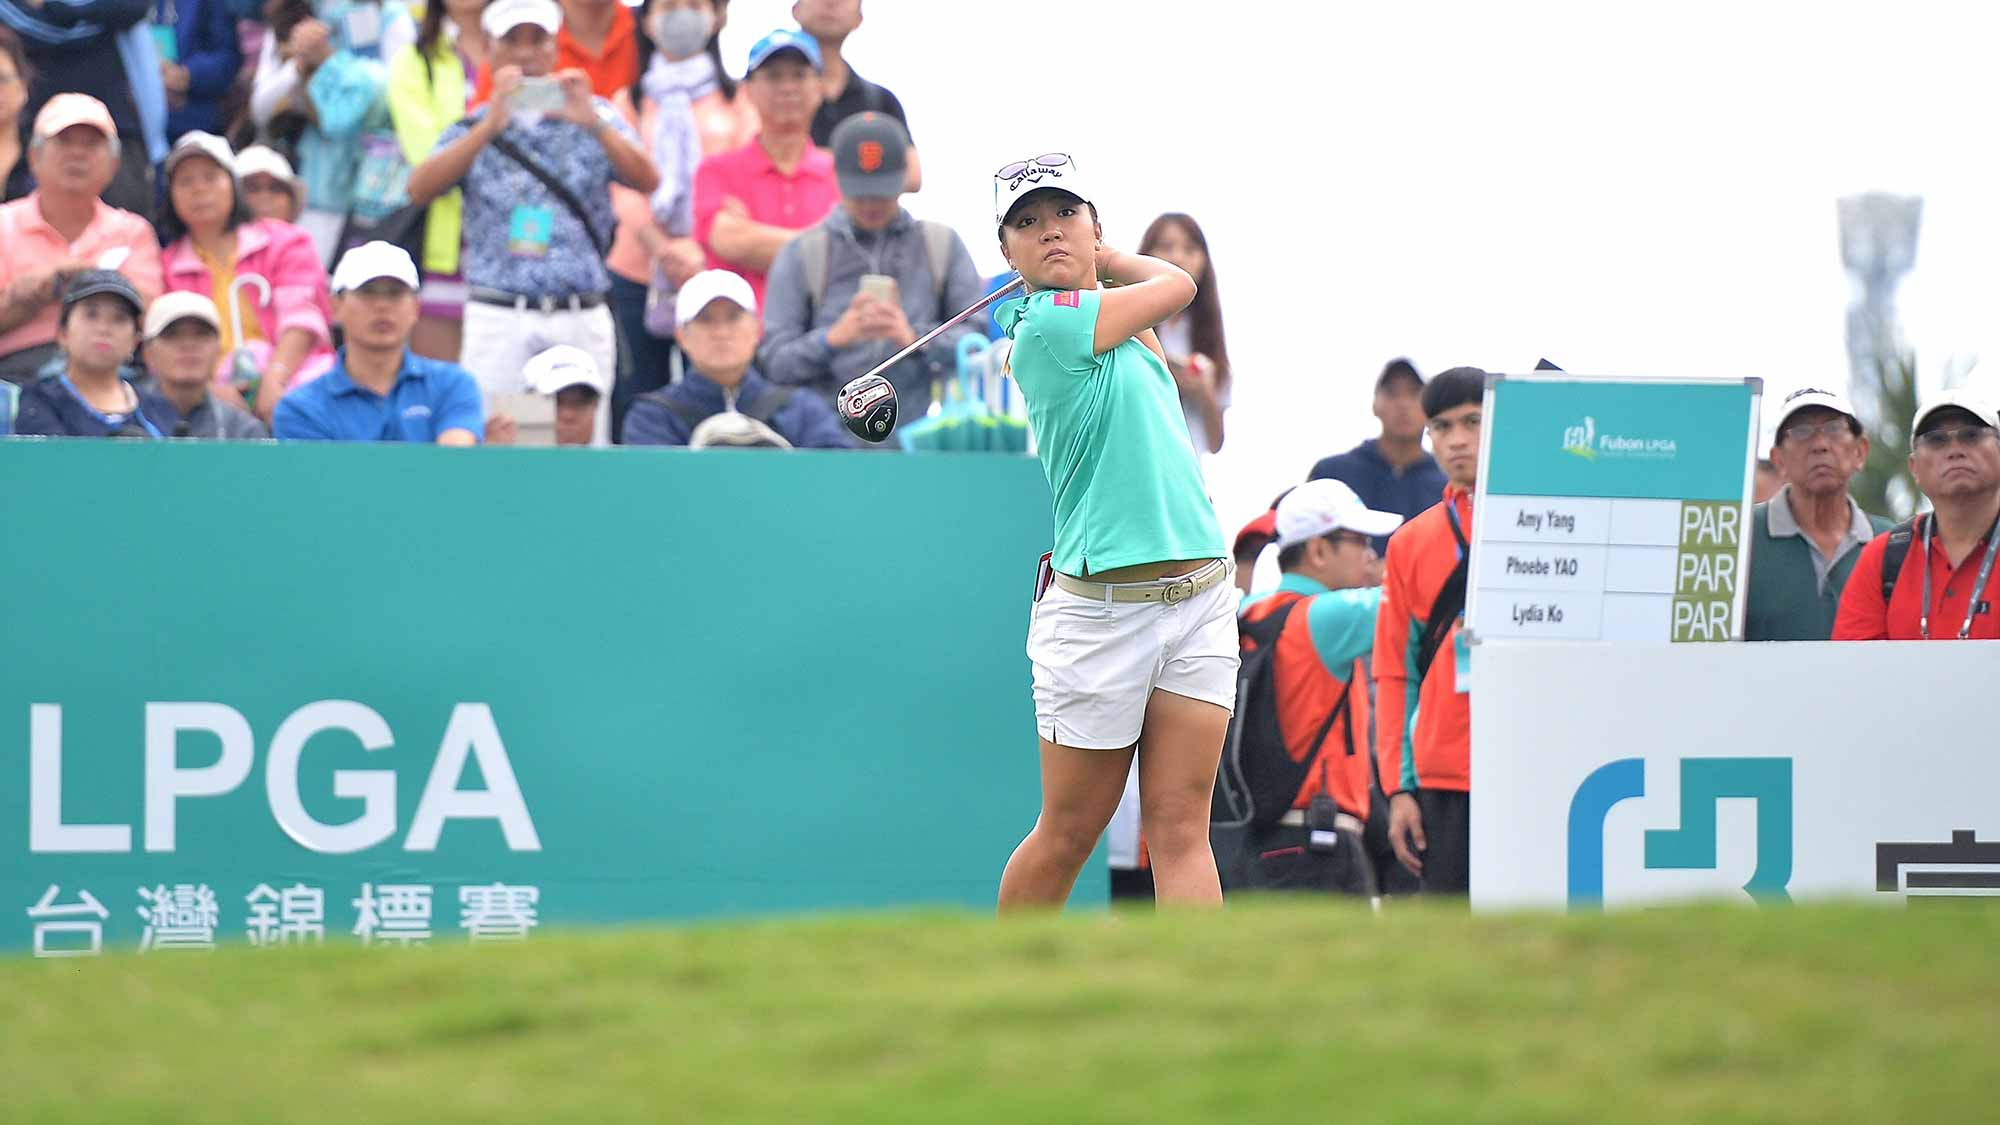 Lydia Ko of New Zealand plays the shot during the round one of 2015 Fubon LPGA Taiwan Championship at Miramar Golf & Country Club